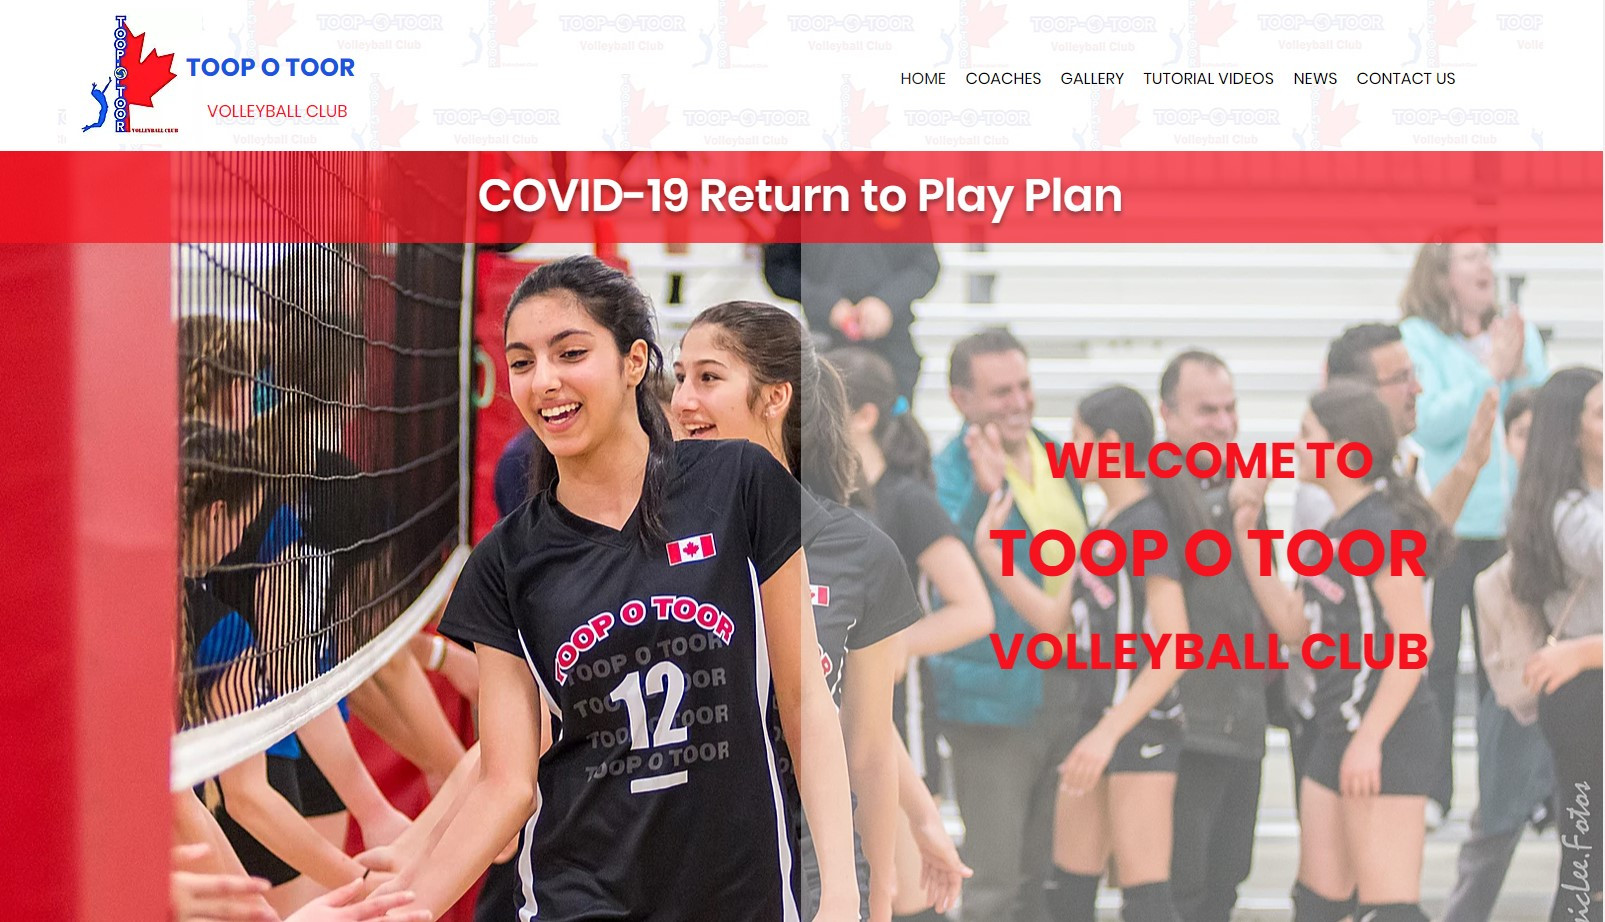 Toop-O-Toor Volleyball Club